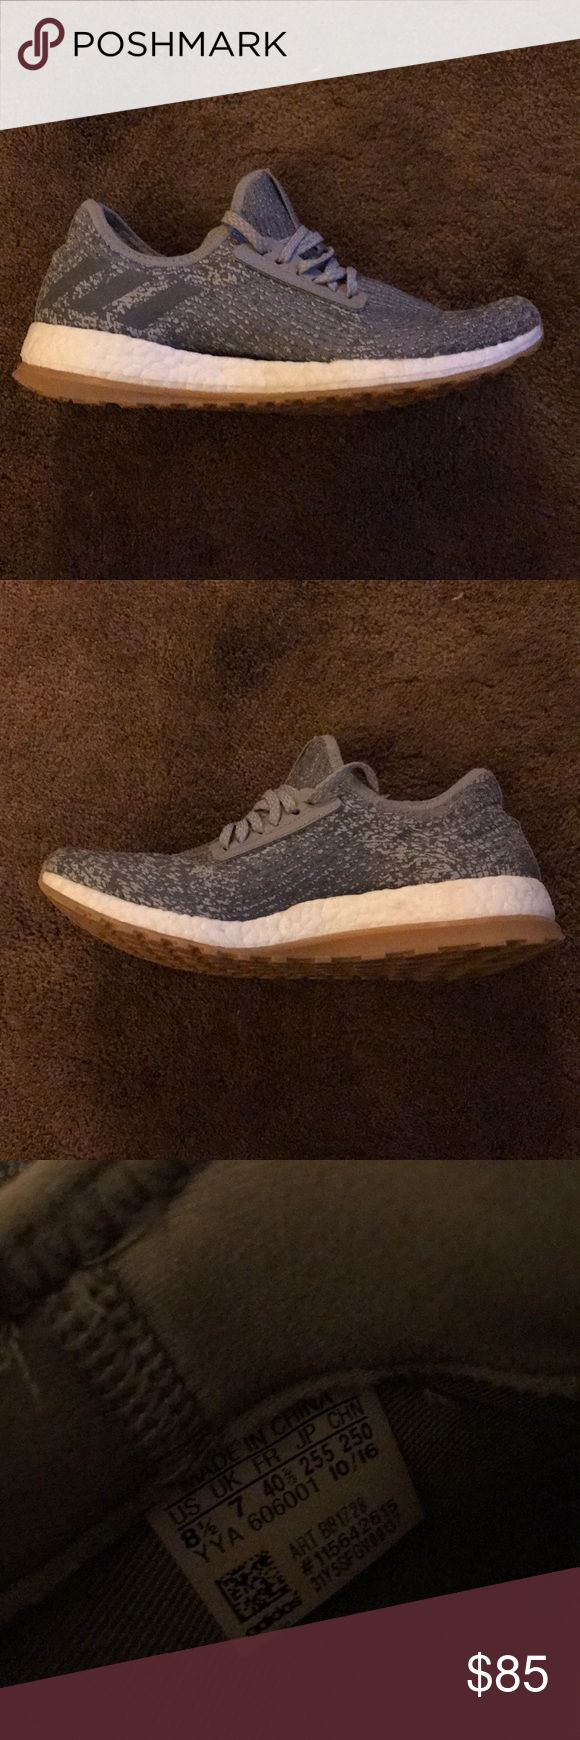 Adidas boost shoes Grey, gum sole, white boost. Lightly worn. Great condition. (With box) adidas Shoes Athletic Shoes